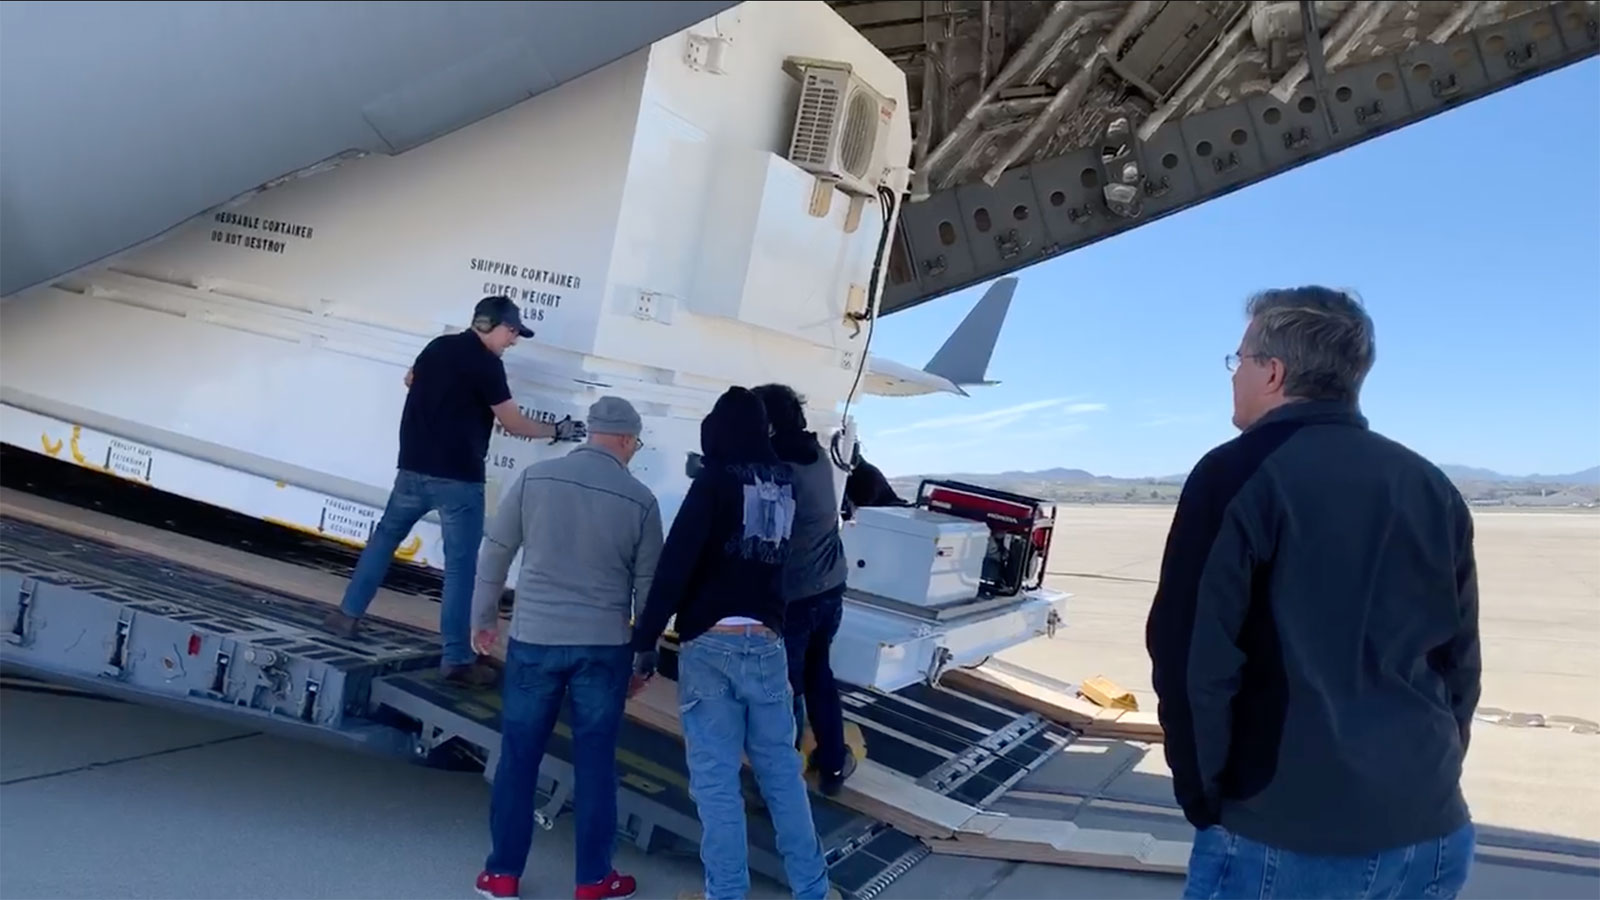 On Feb. 11, 2020, Mars 2020 Assembly, Test and Launch Operations Manager David Gruel watched as members of his team loaded NASA's next Mars rover onto an Air Force C-17 at March Air Reserve Base in Riverside, California.